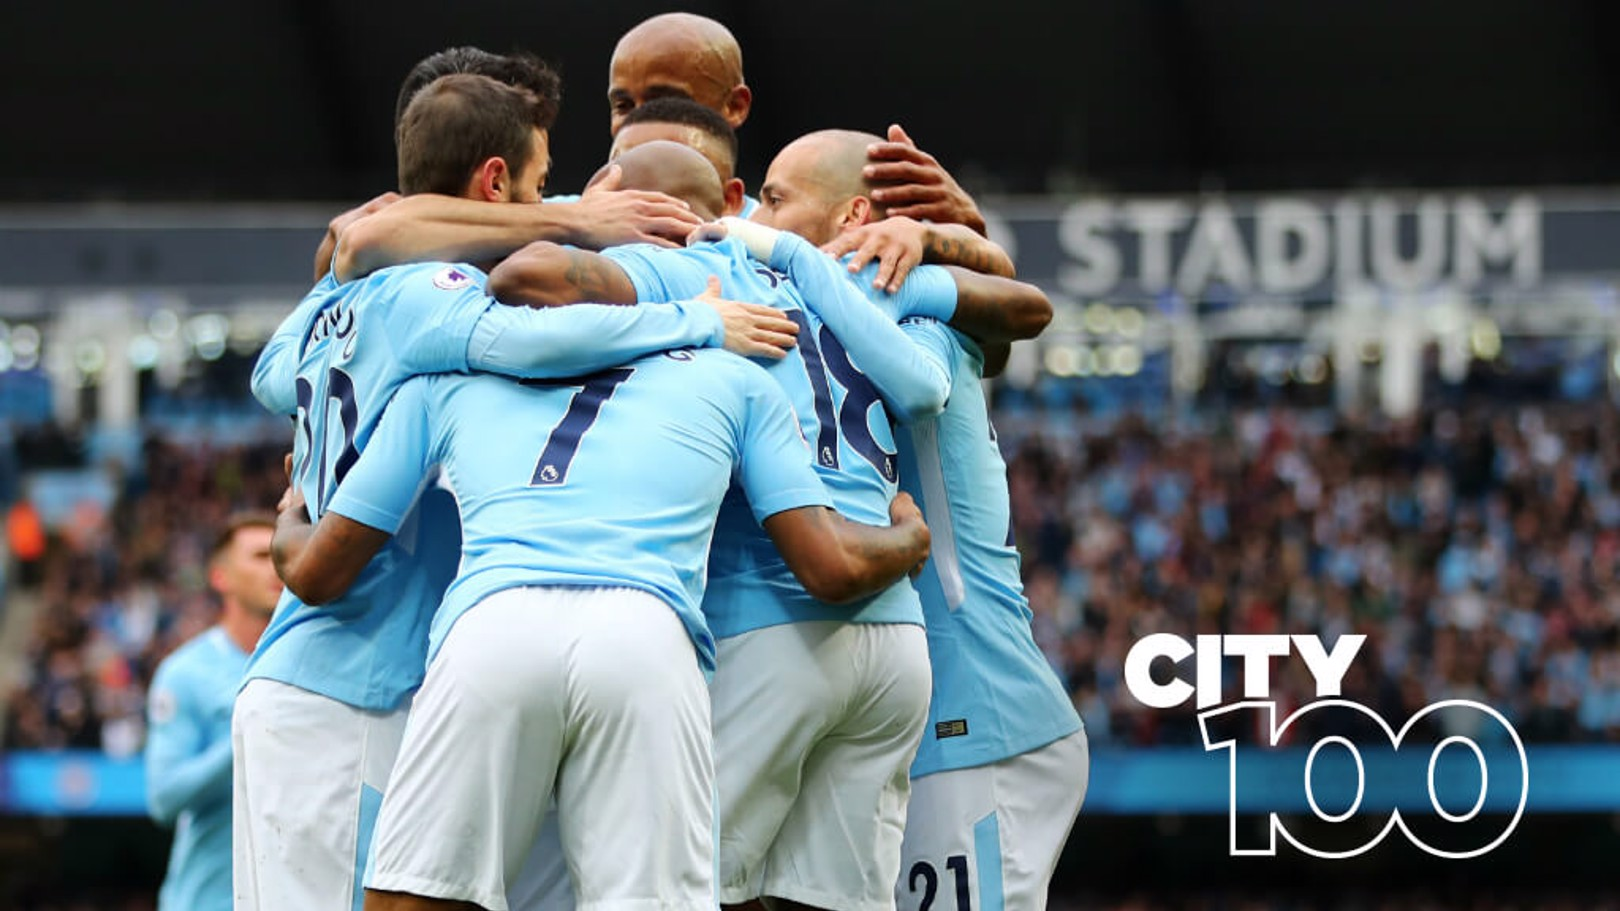 CITY 100: Celebrating the Blues' remarkable 2017/18 campaign...